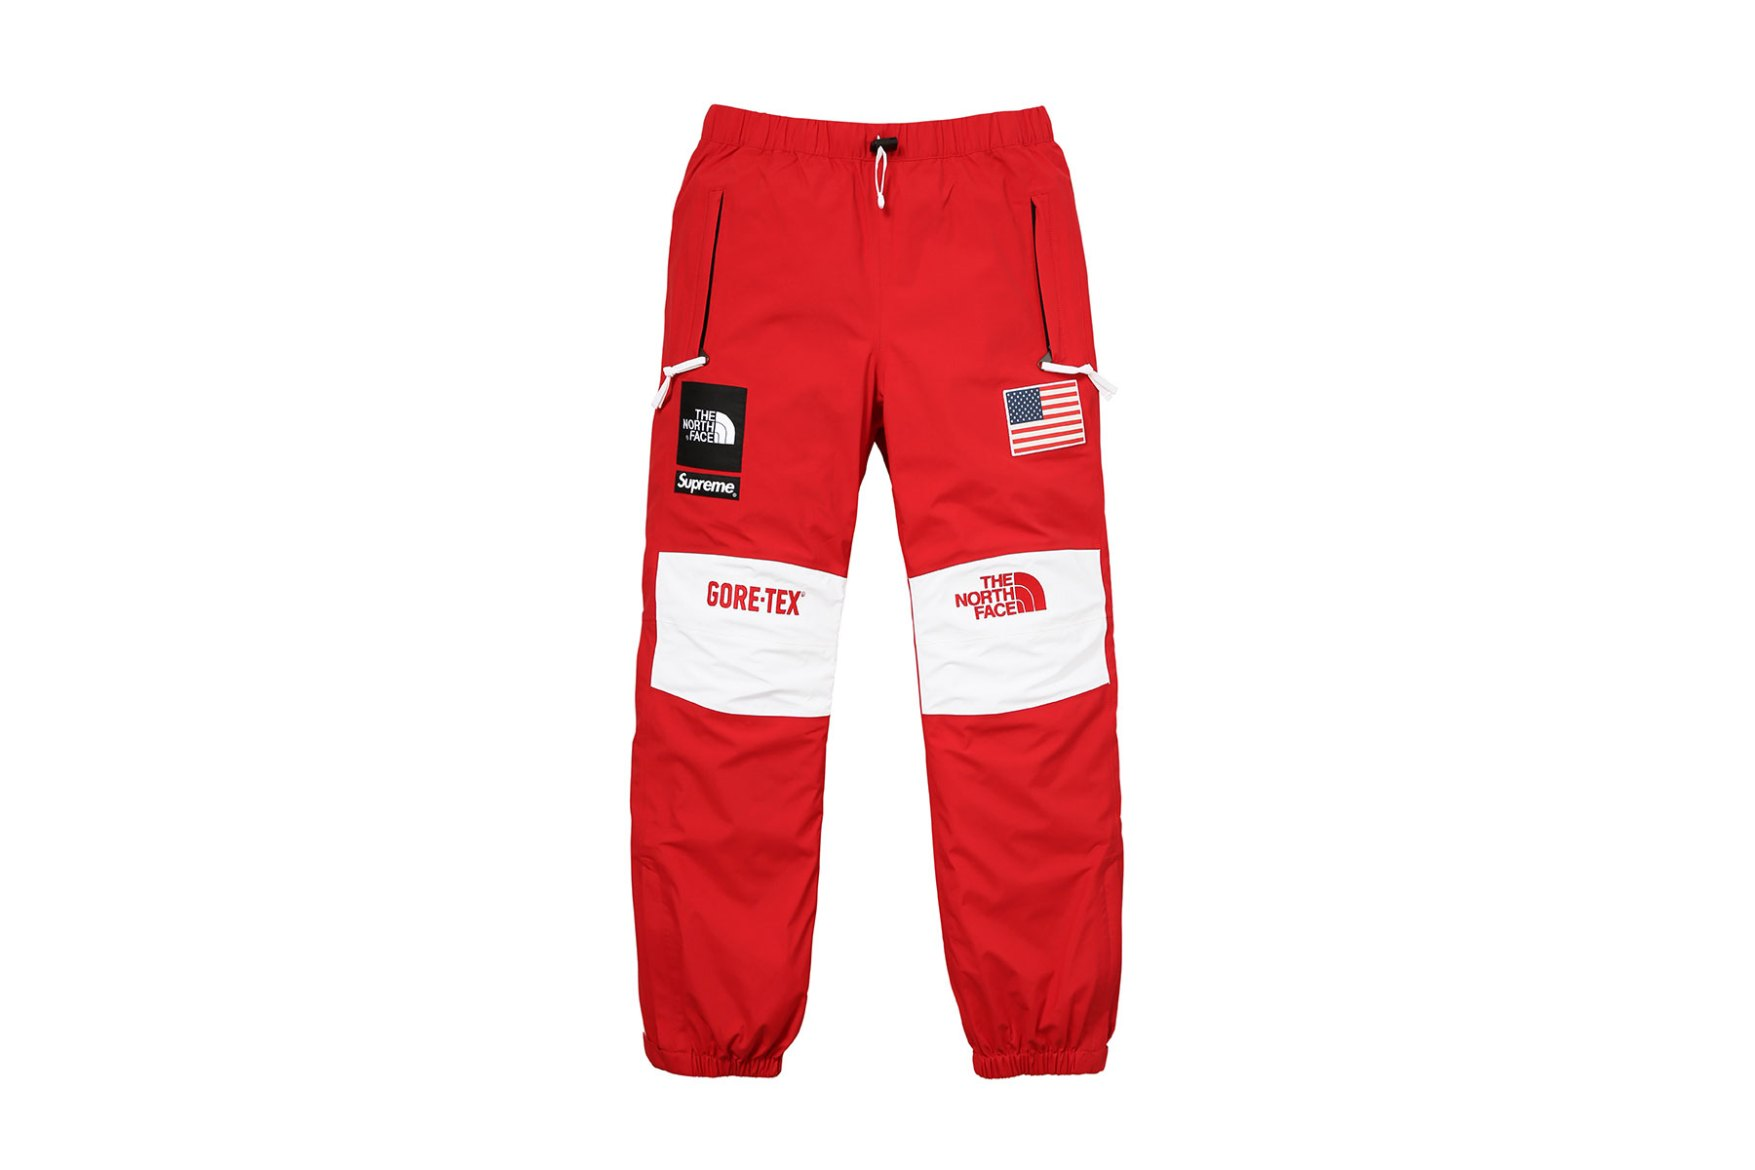 supreme-the-north-face-2017-spring-summer-red-gore-tex-pant-19